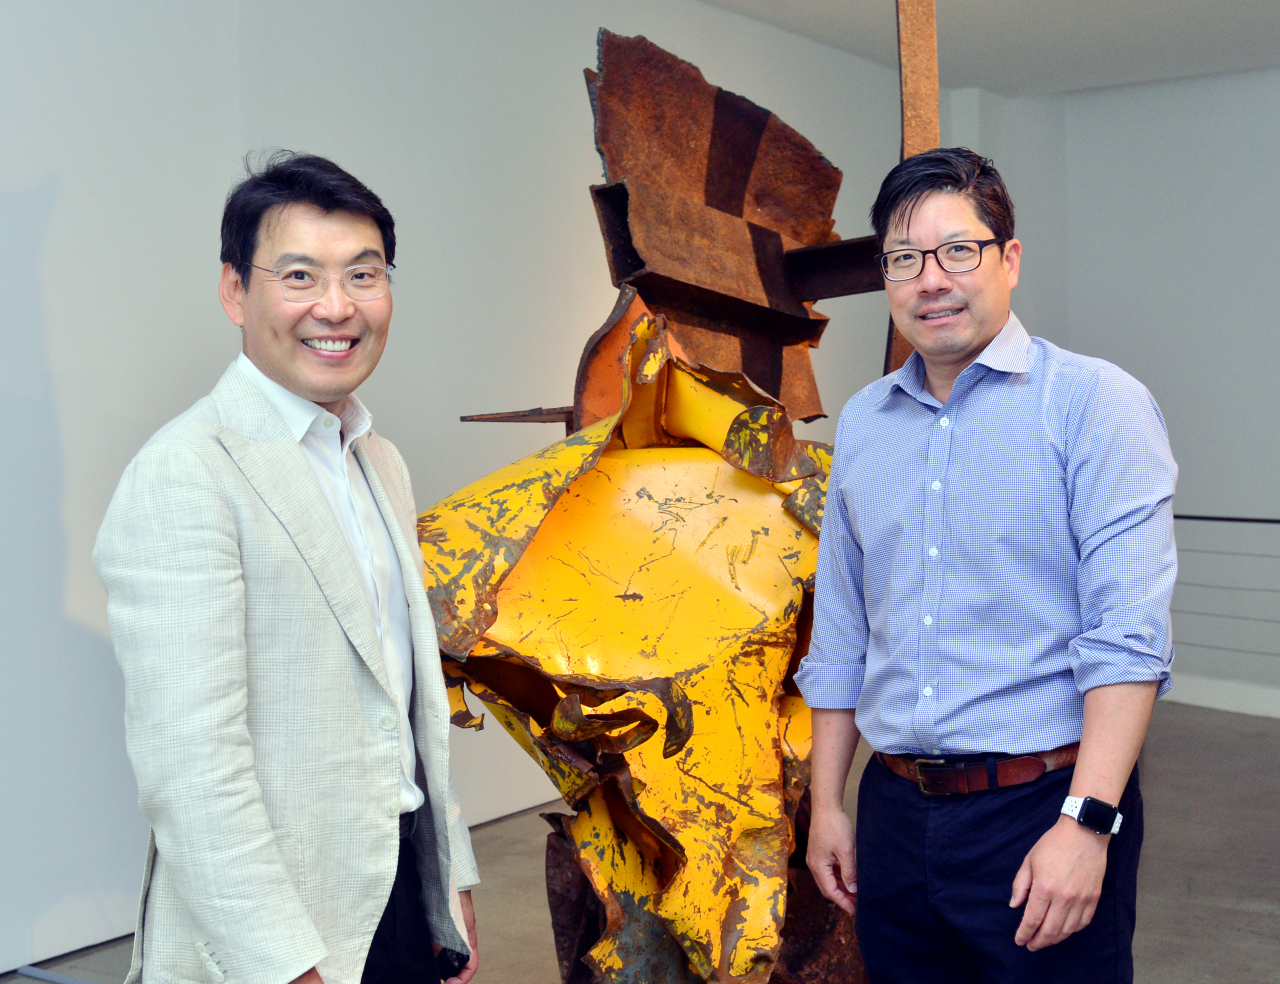 Gallery Hyundai President Do Hyung-Teh and Executive Director Patrick Lee pose for photos at Gallery Hyundai in Jongno, central Seoul. (Park Hyun-koo / The Korea Herald)